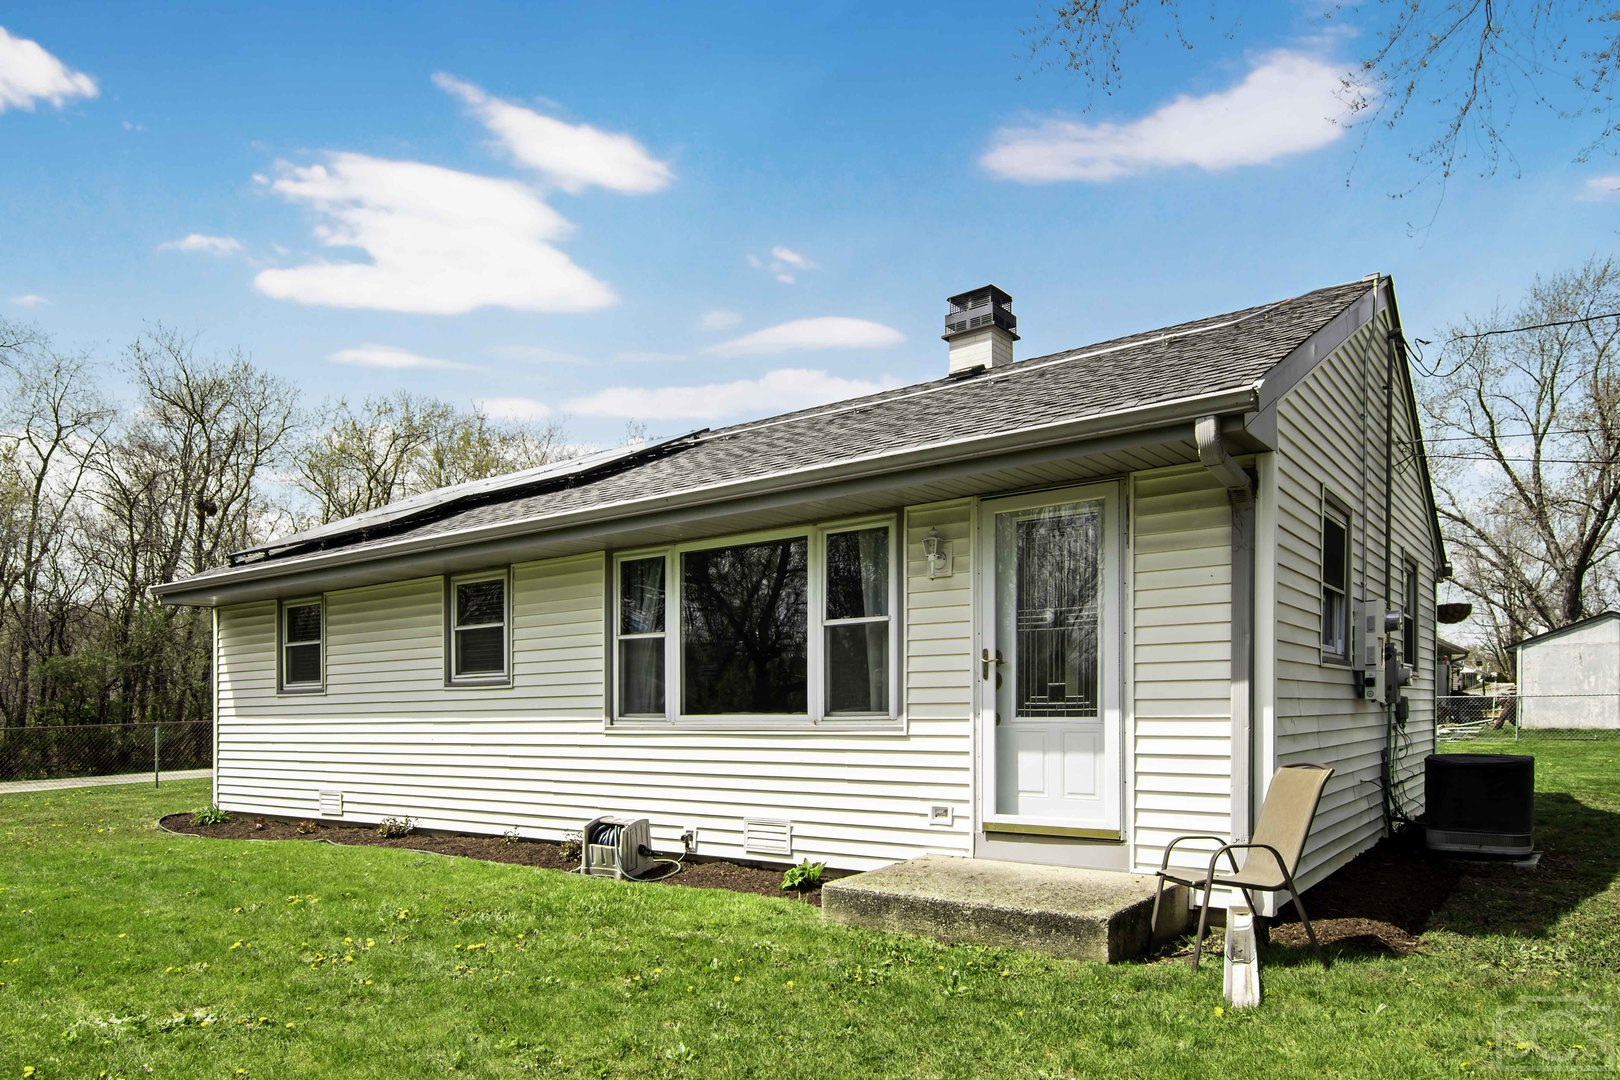 117 Georgine Street, Crystal Lake in Mc Henry County, IL 60014 Home for Sale